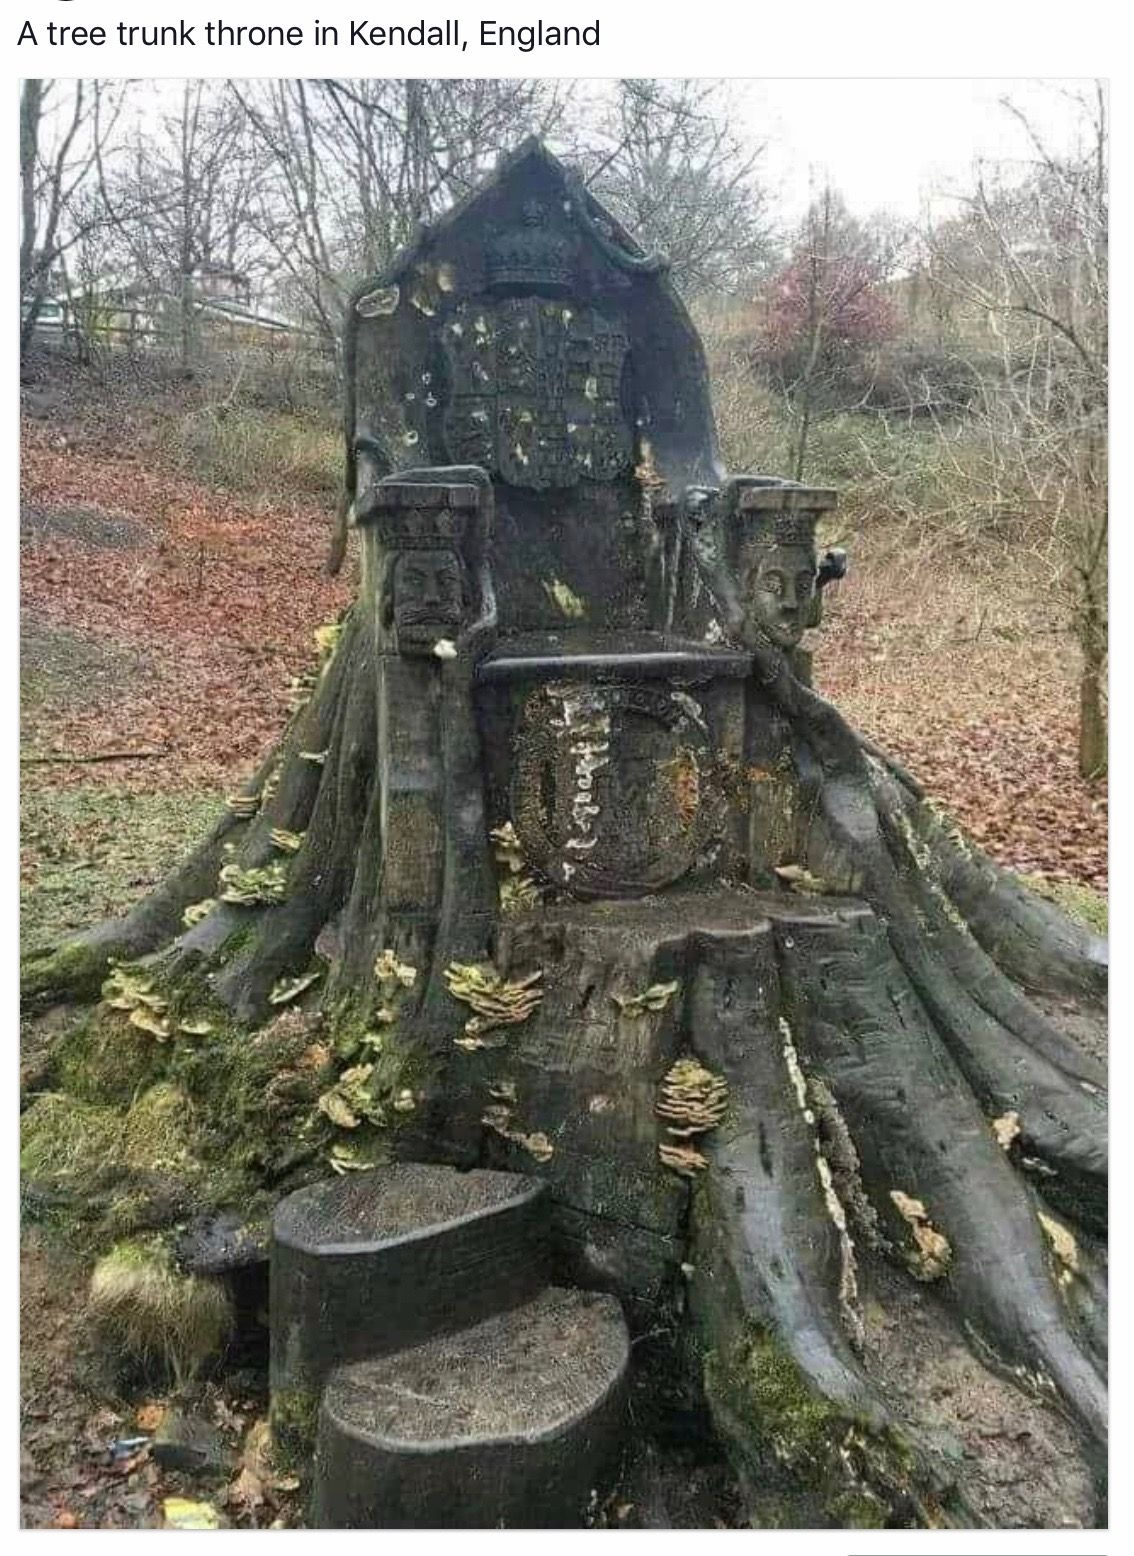 Great Ideas for Your Garden With Tree Stumps. Tree trunk throne in UK